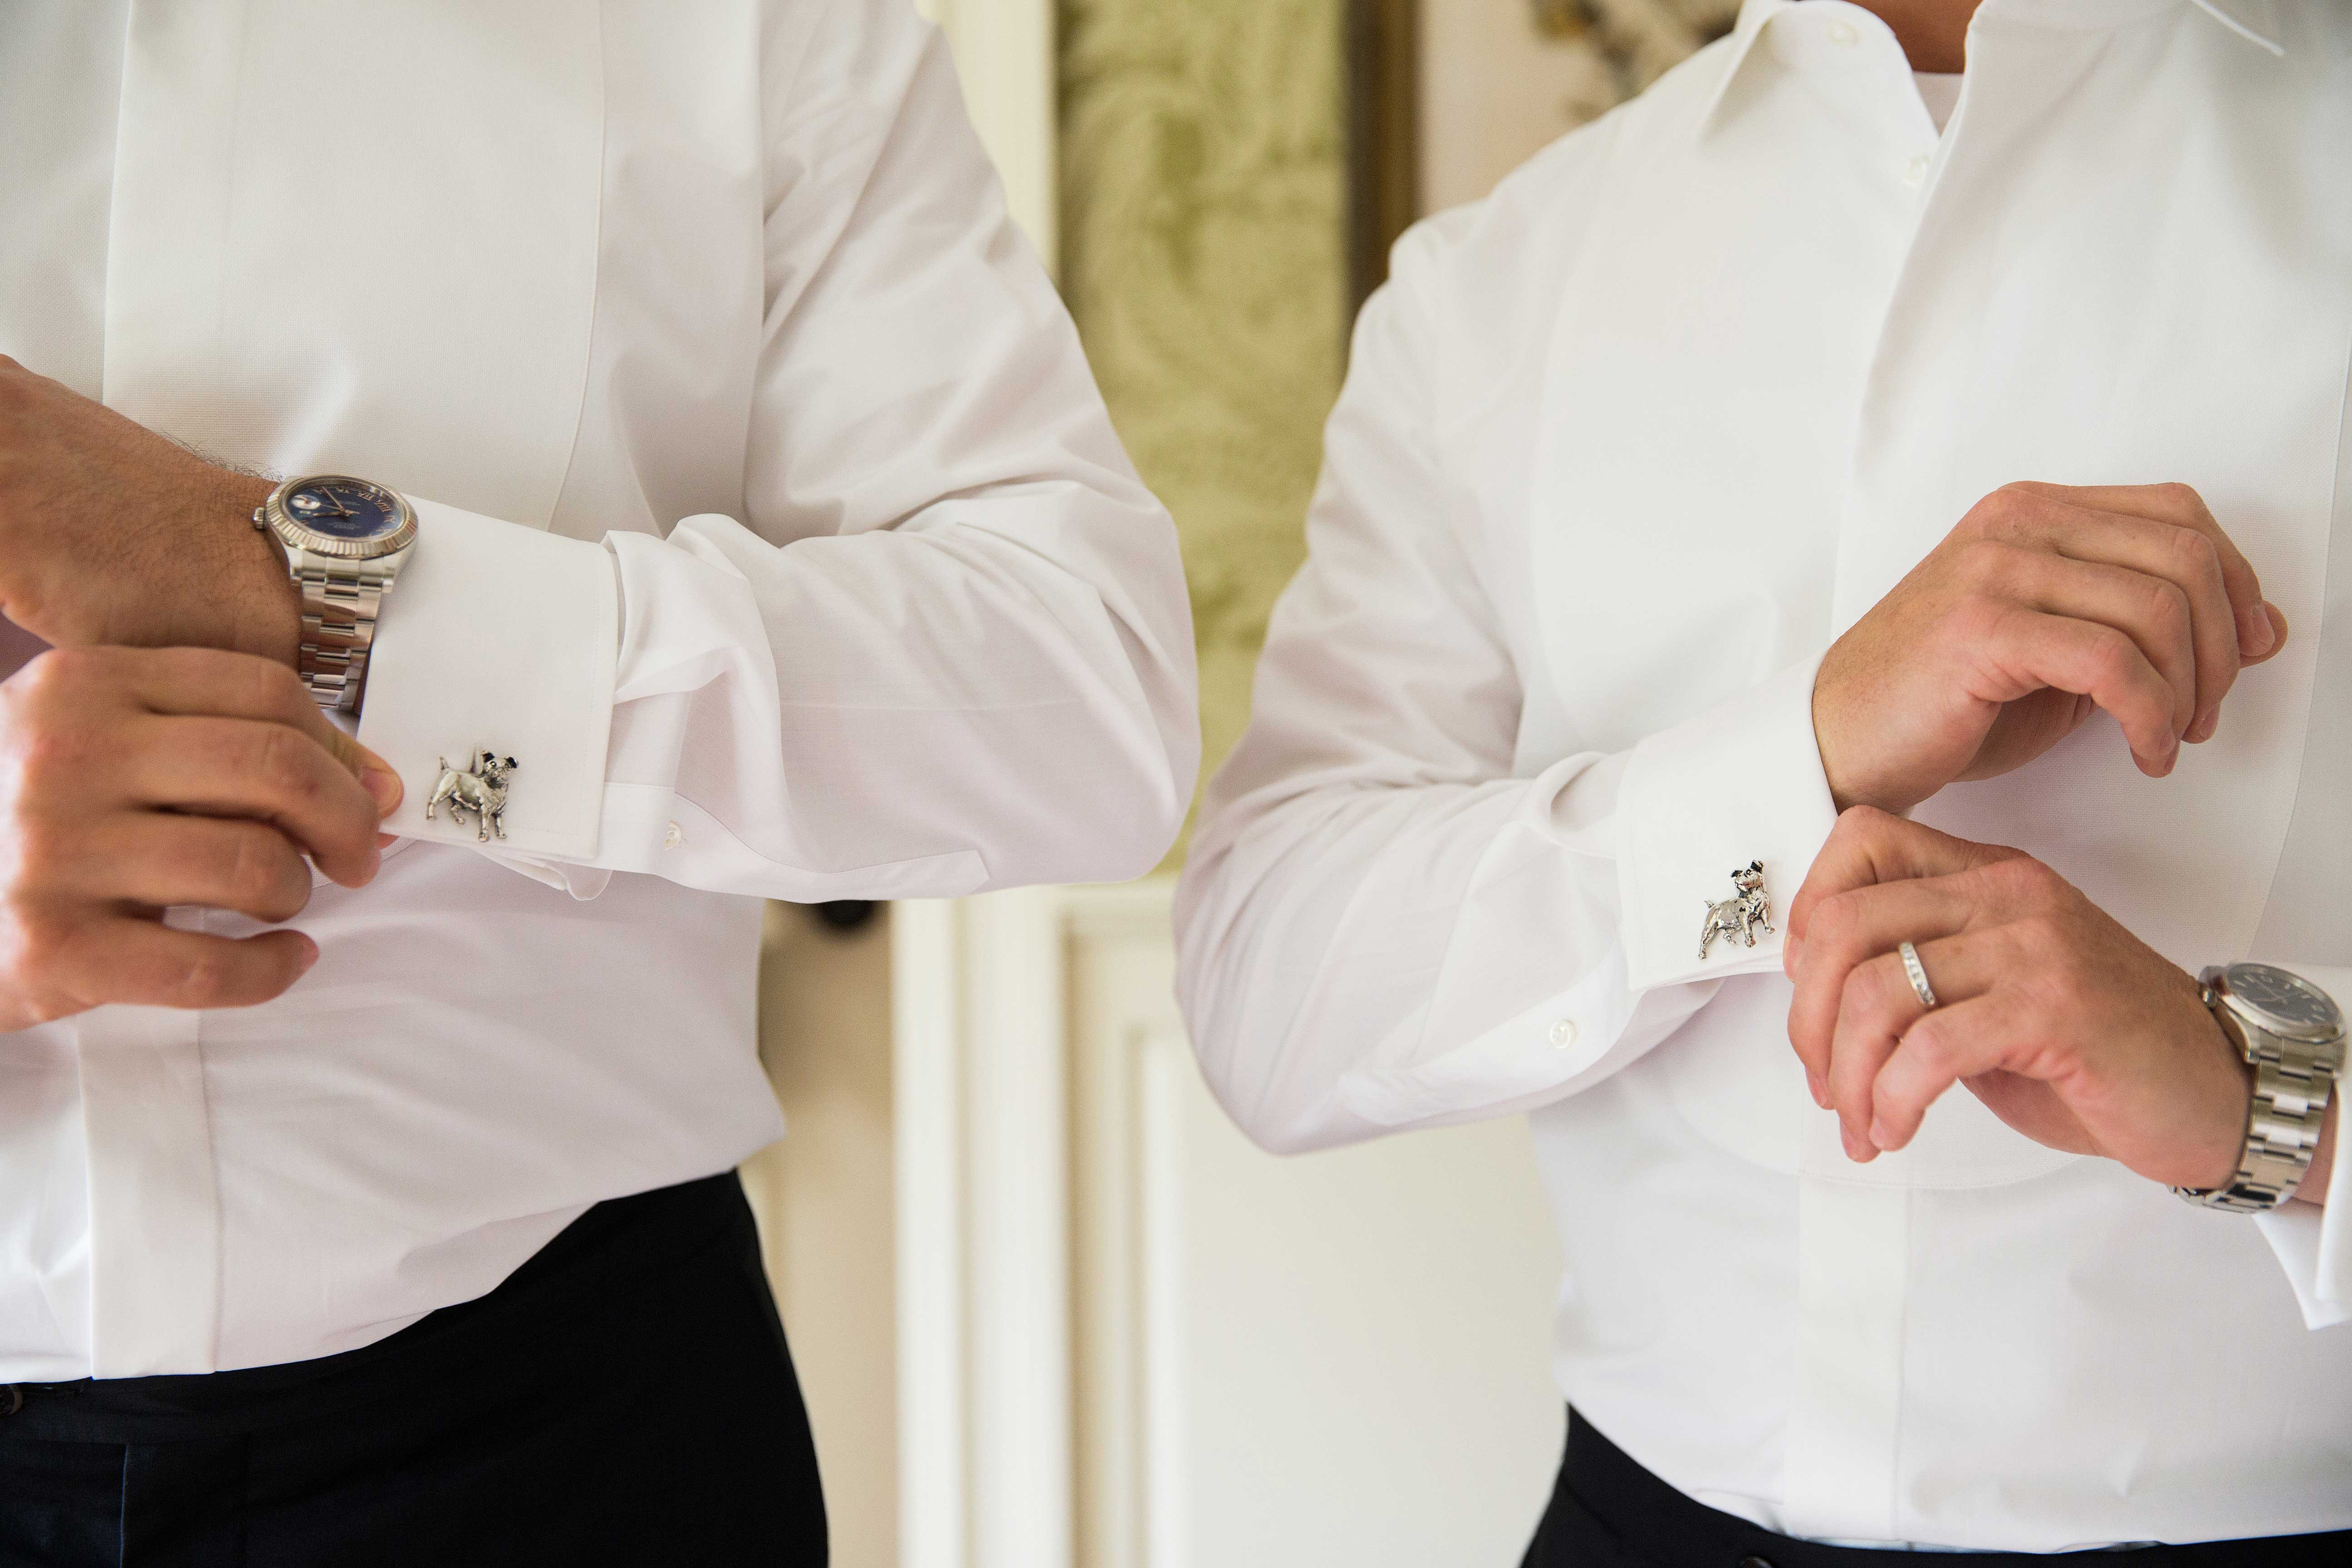 Dog design on cuff links cufflinks